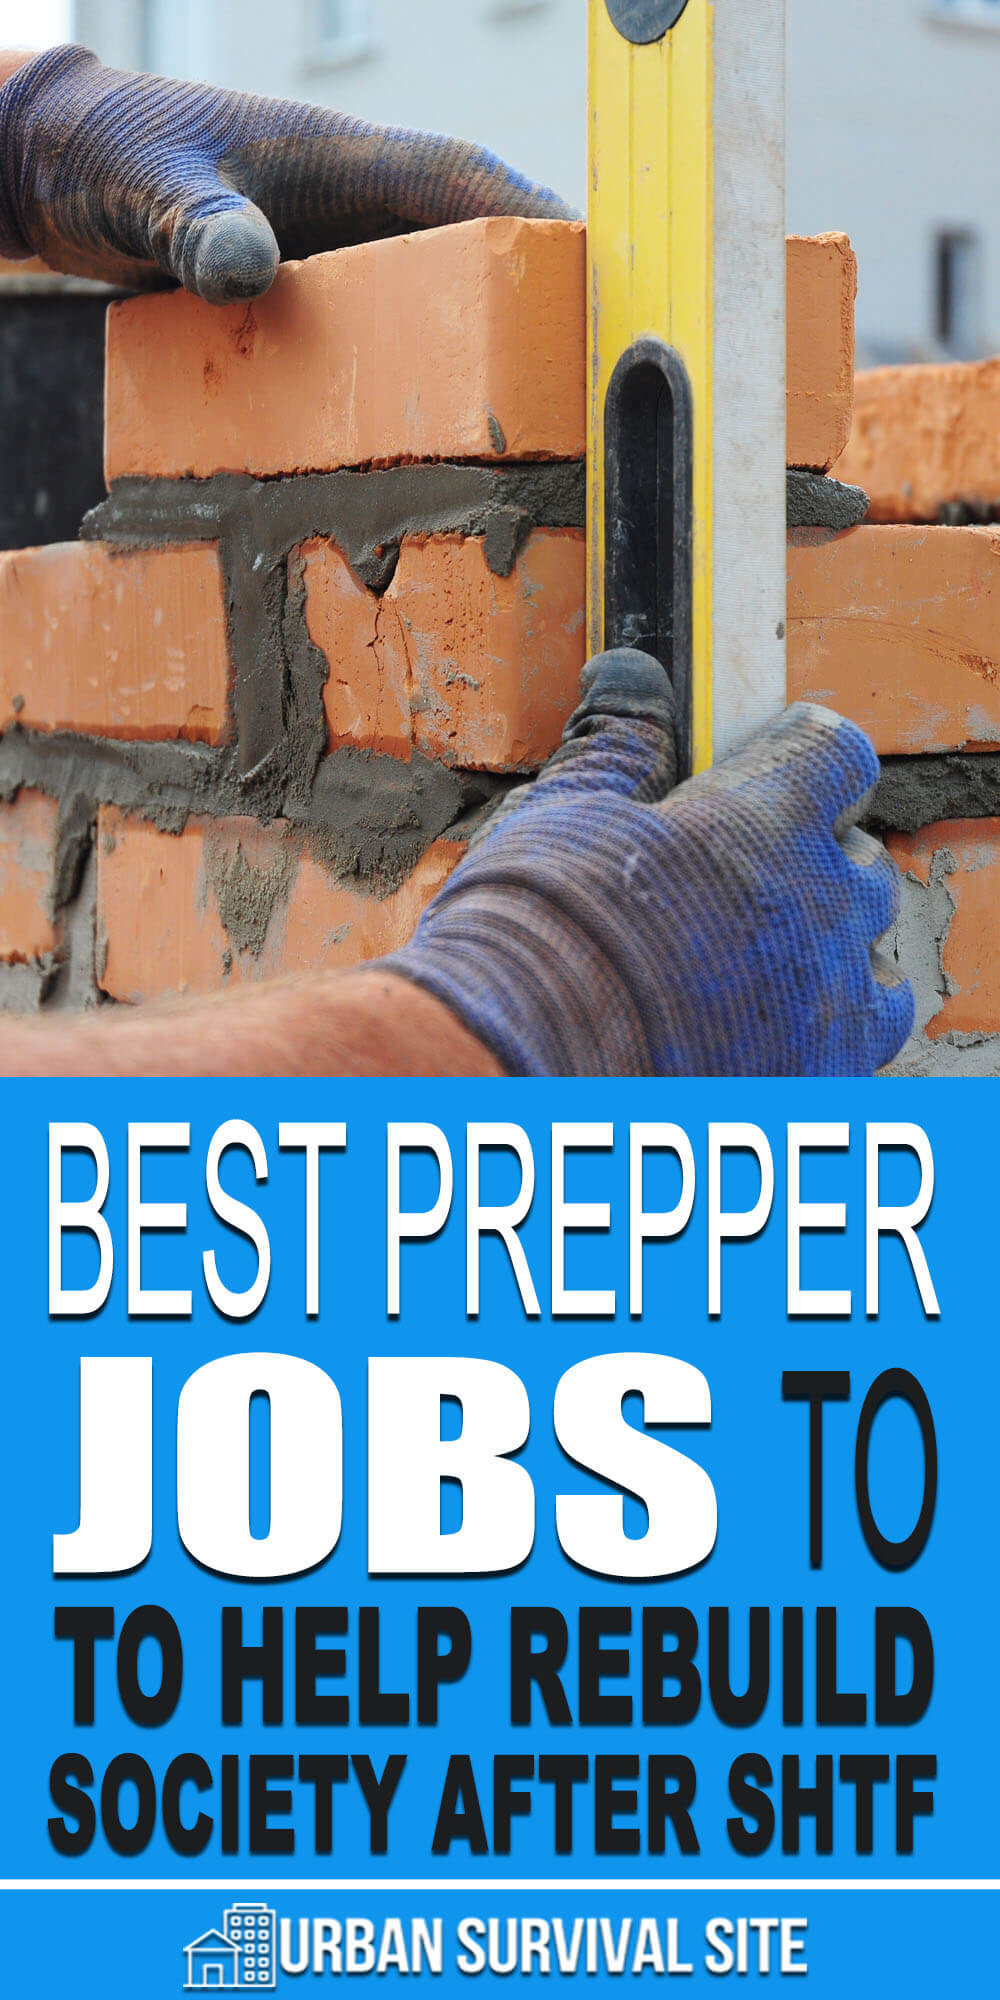 Best Prepper Jobs To Help Rebuild Society After SHTF